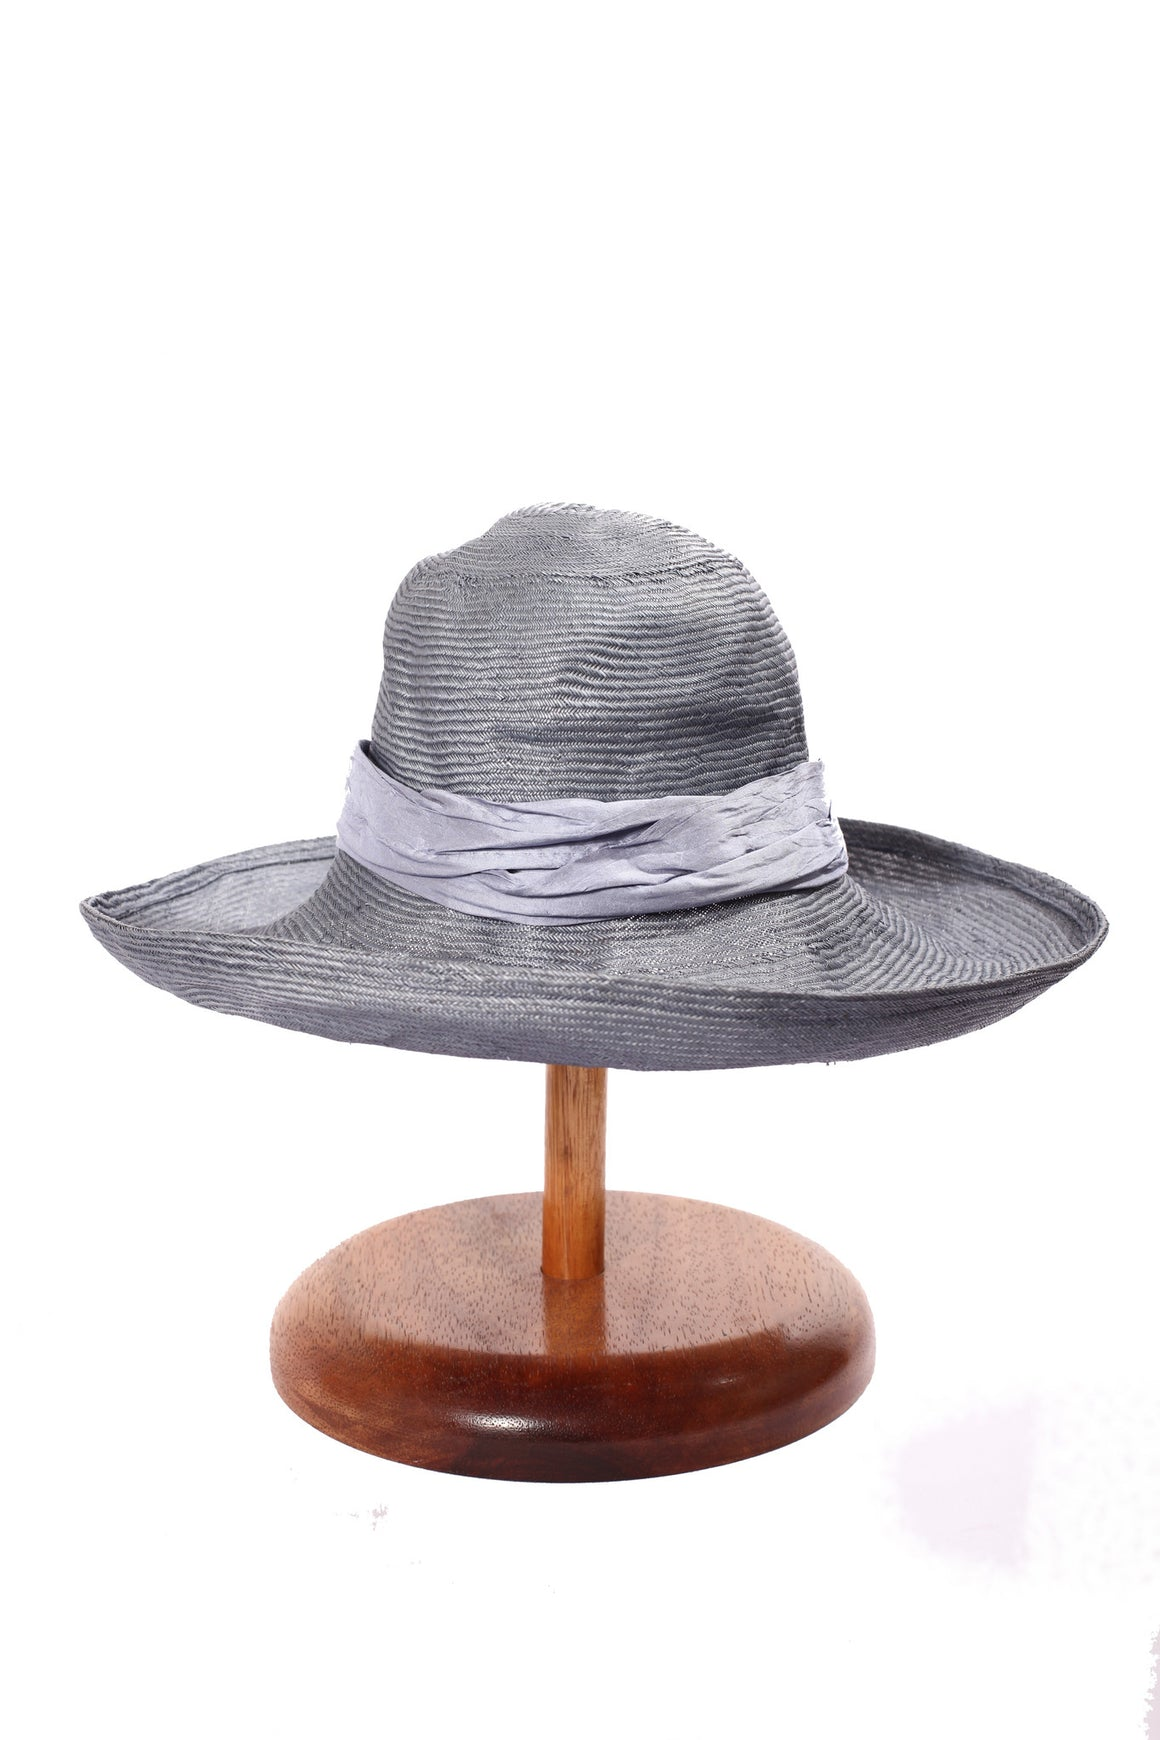 Maya Neumann Squash Hat - Light Blue